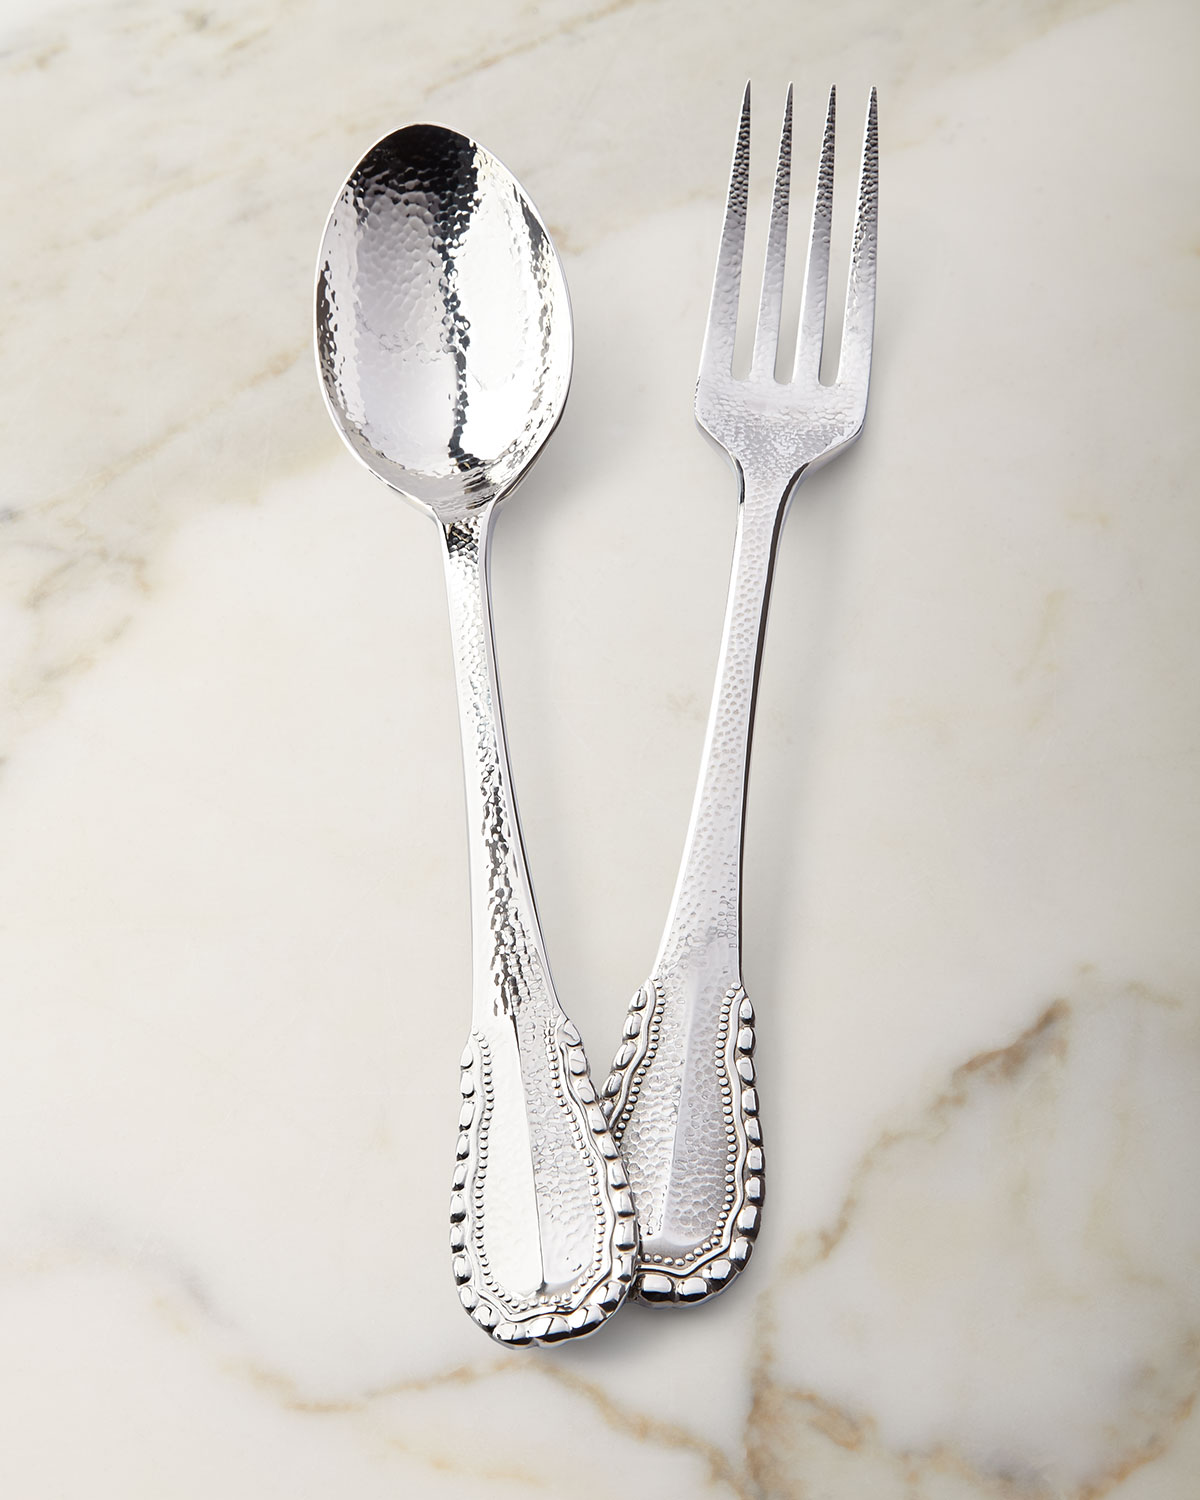 Ricci Silversmithmerletto Serving Spoon